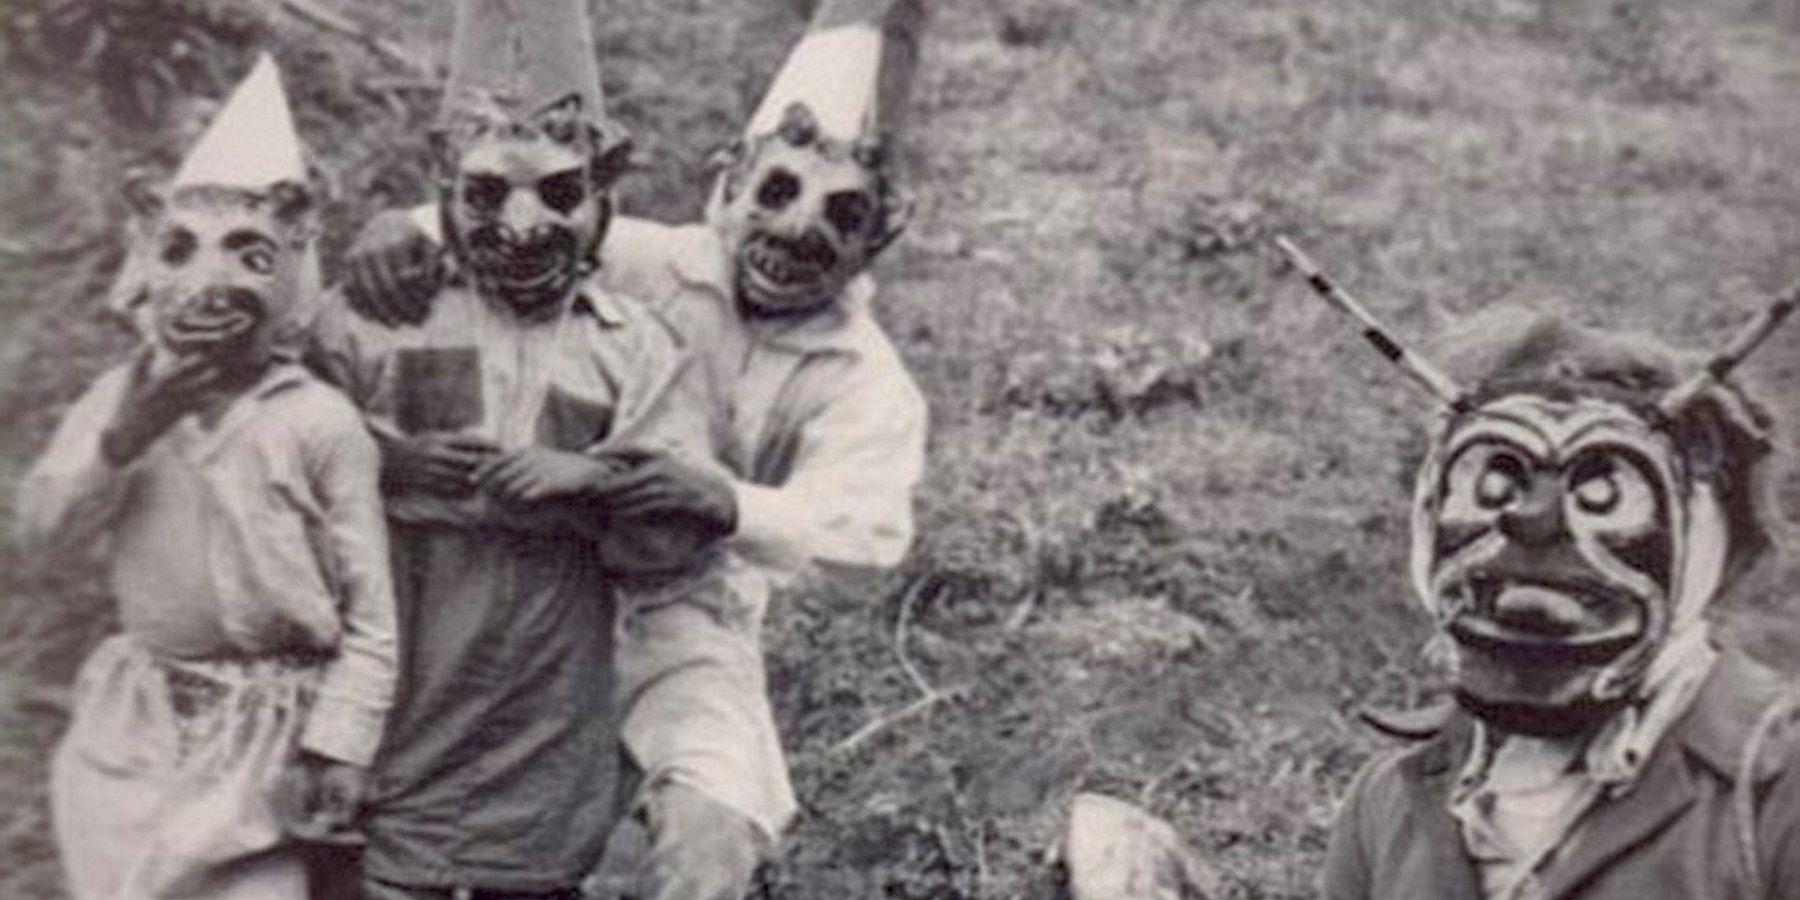 15 Terrifying Vintage Halloween Costumes That Are The Stuff Of Nightmares